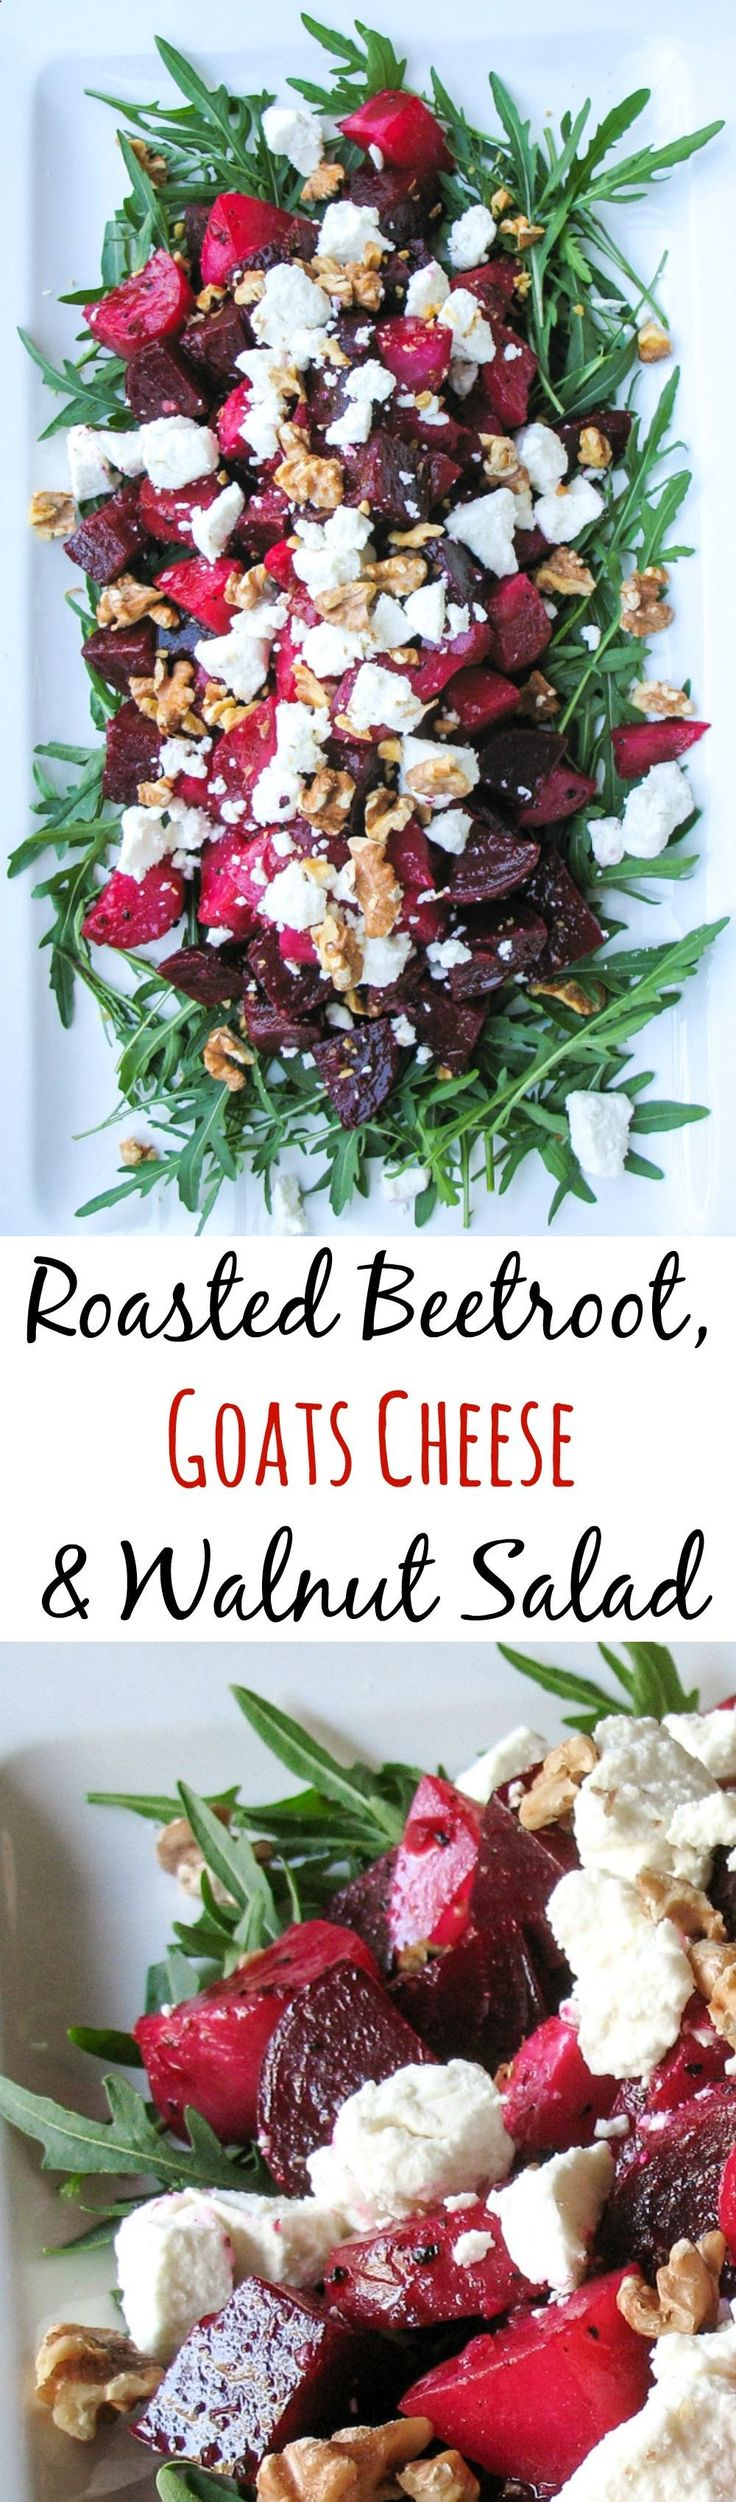 Roasted Beetroot, Goats Cheese  Walnut Salad. A Great main course salad.